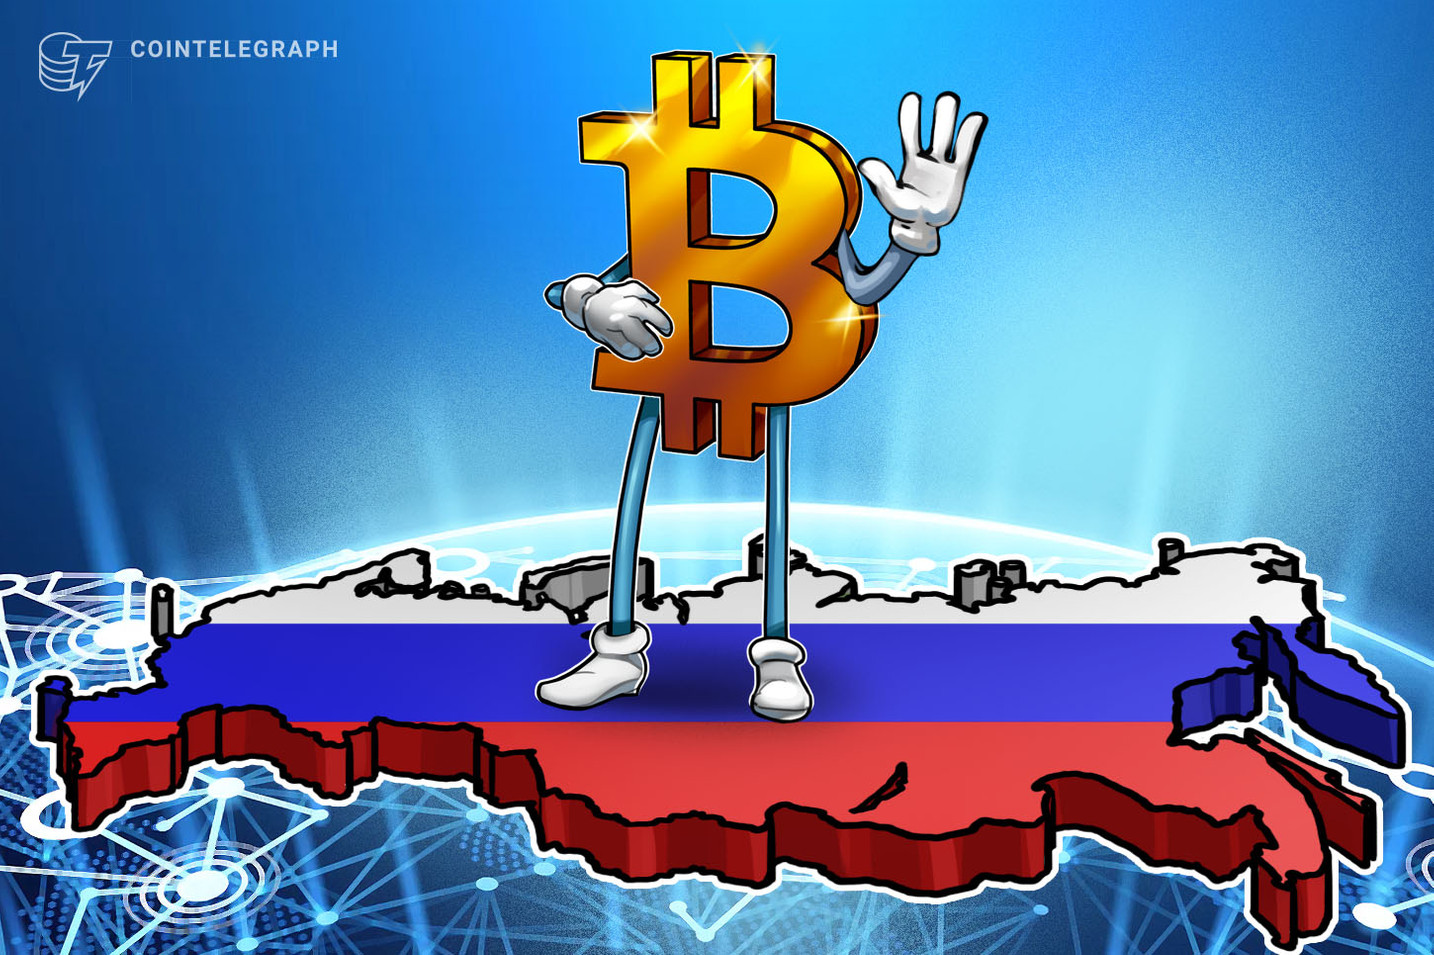 binary options 101 course free volume of person-to-person bitcoin trading in #venezuela hits record high last week